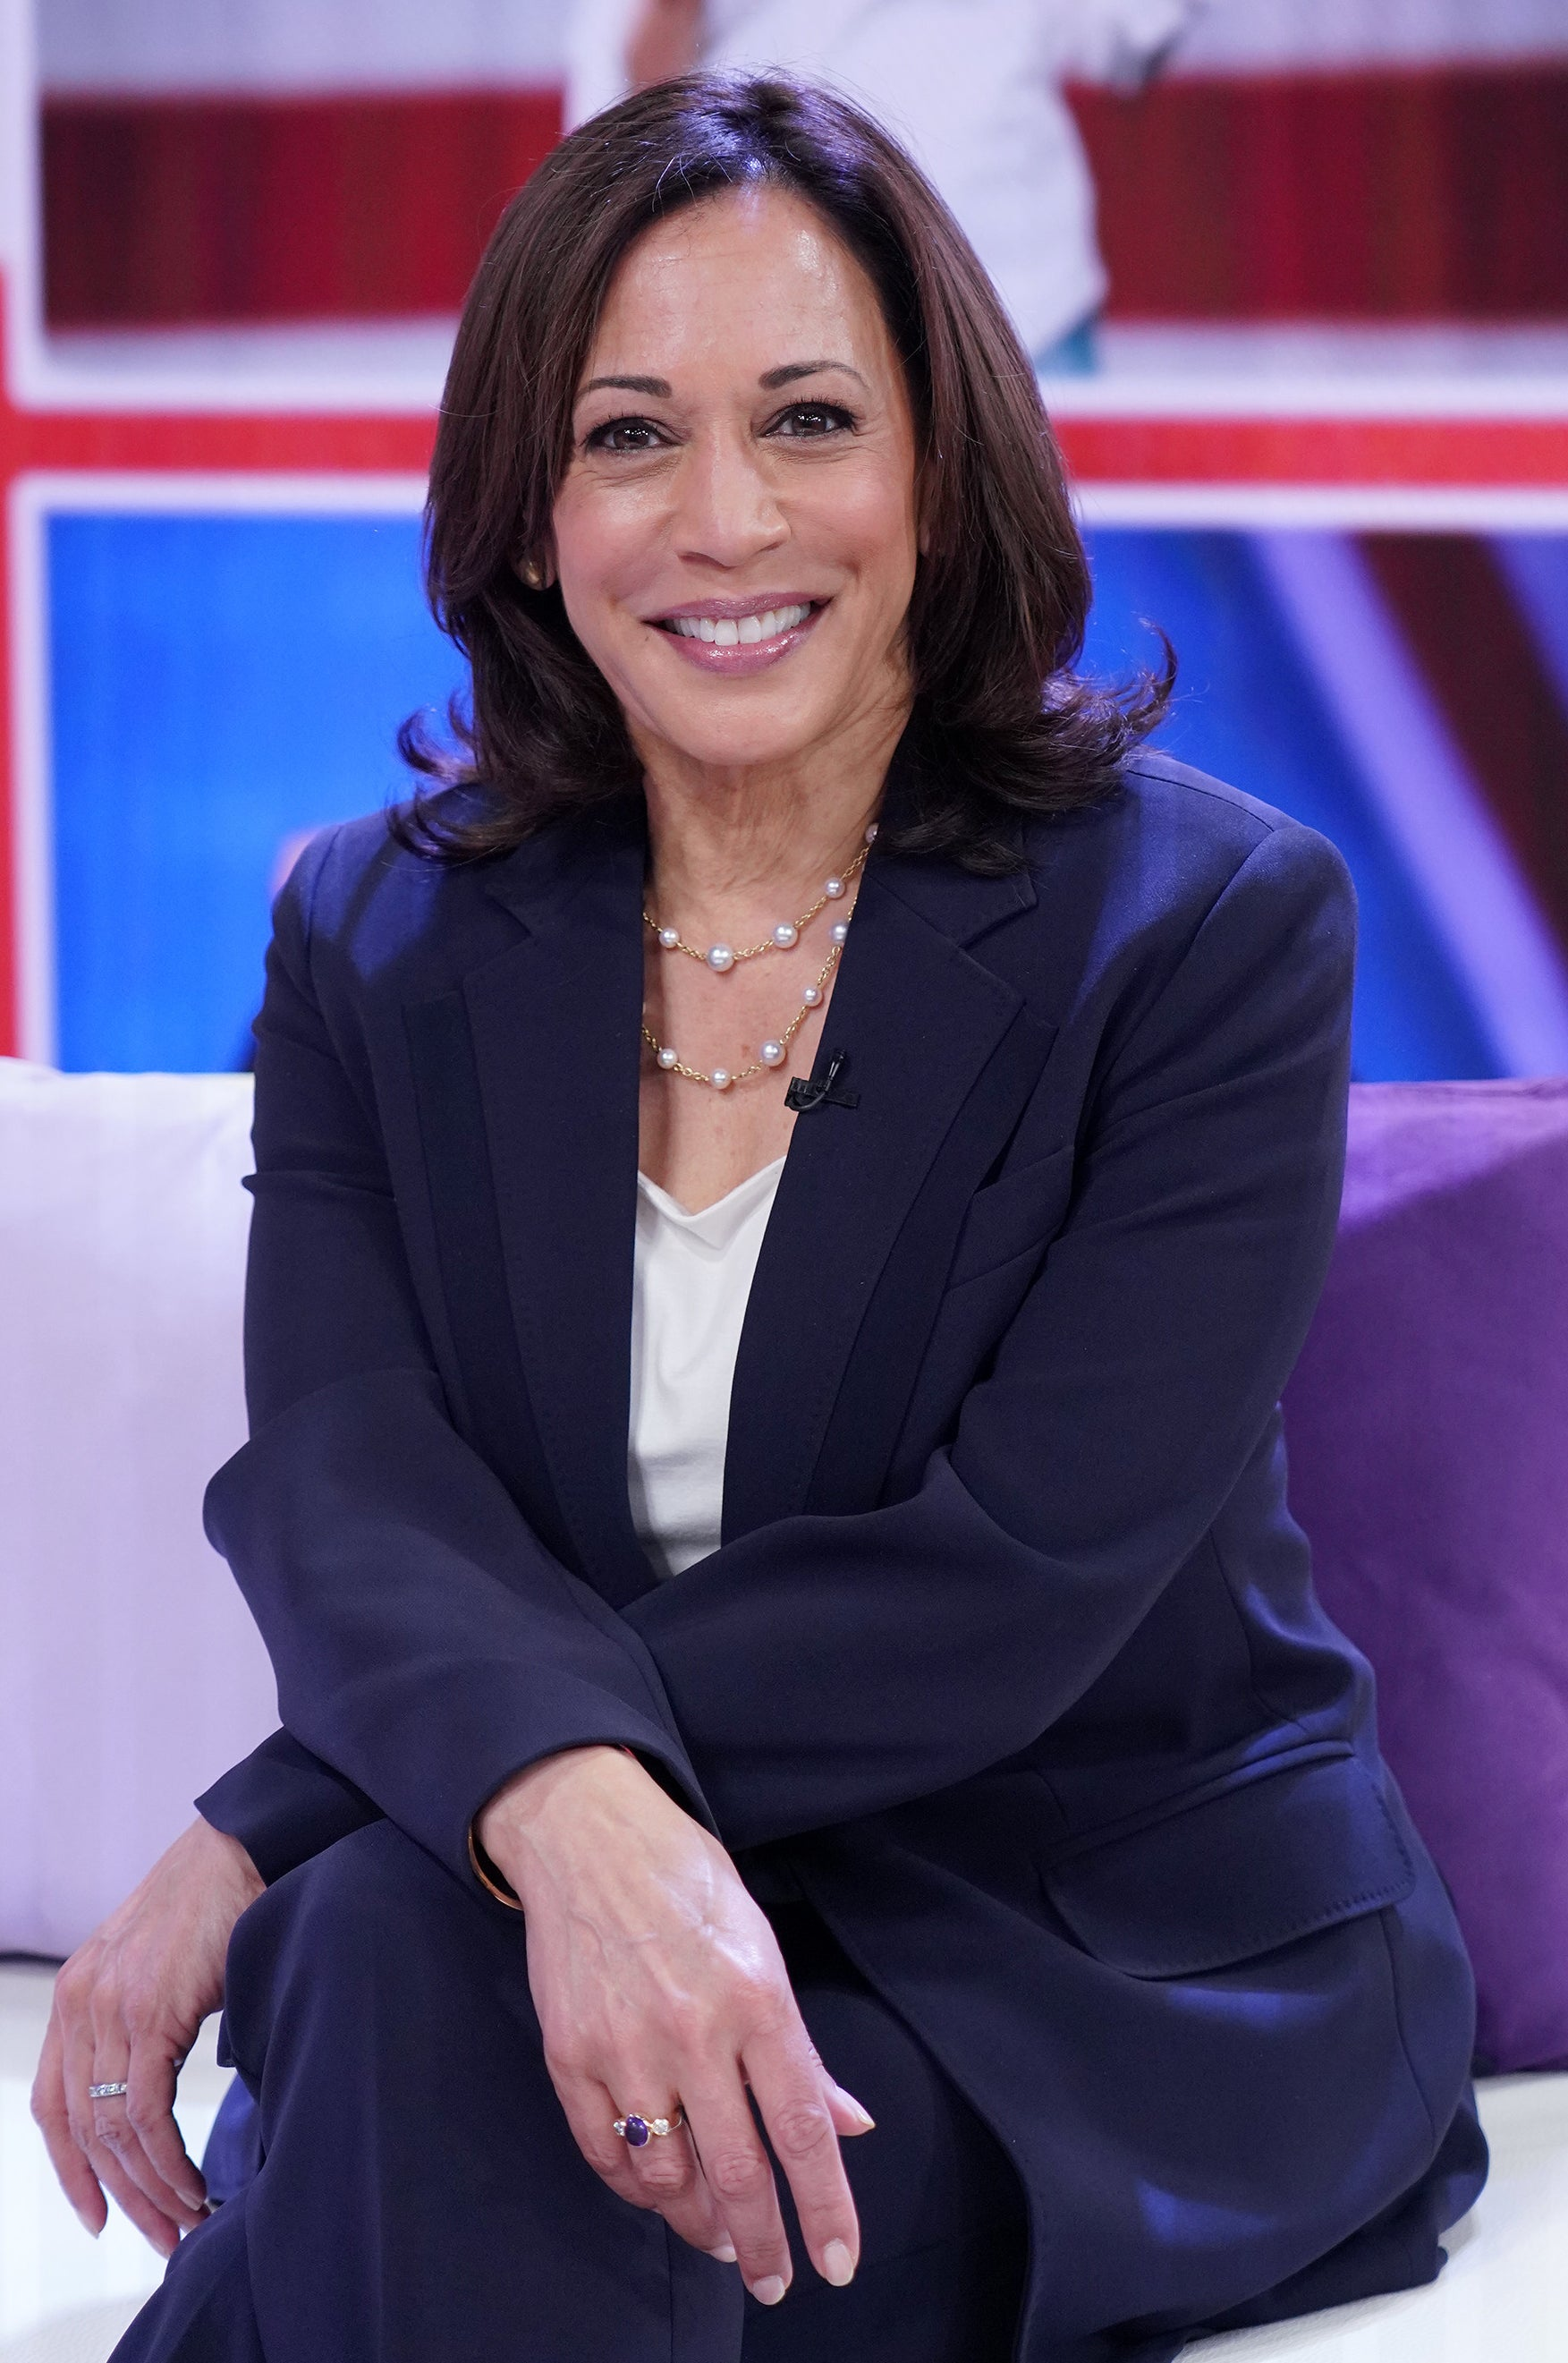 Kamala Harris smiling as she sits on a talk show couch in a navy blue suit with a white shirt